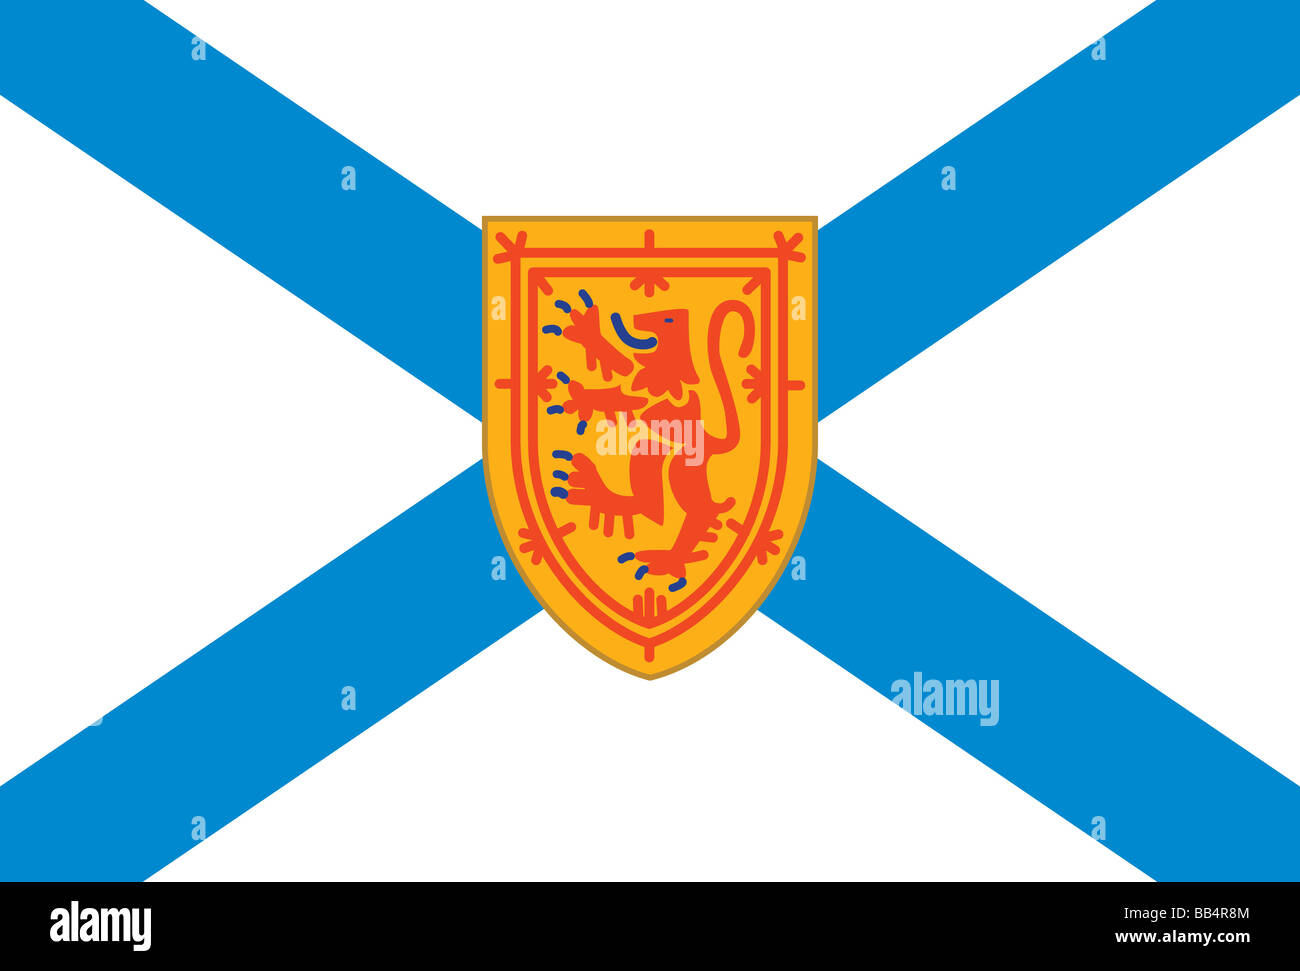 Flag of Nova Scotia, a Canadian province located on the eastern seaboard of North America. - Stock Image